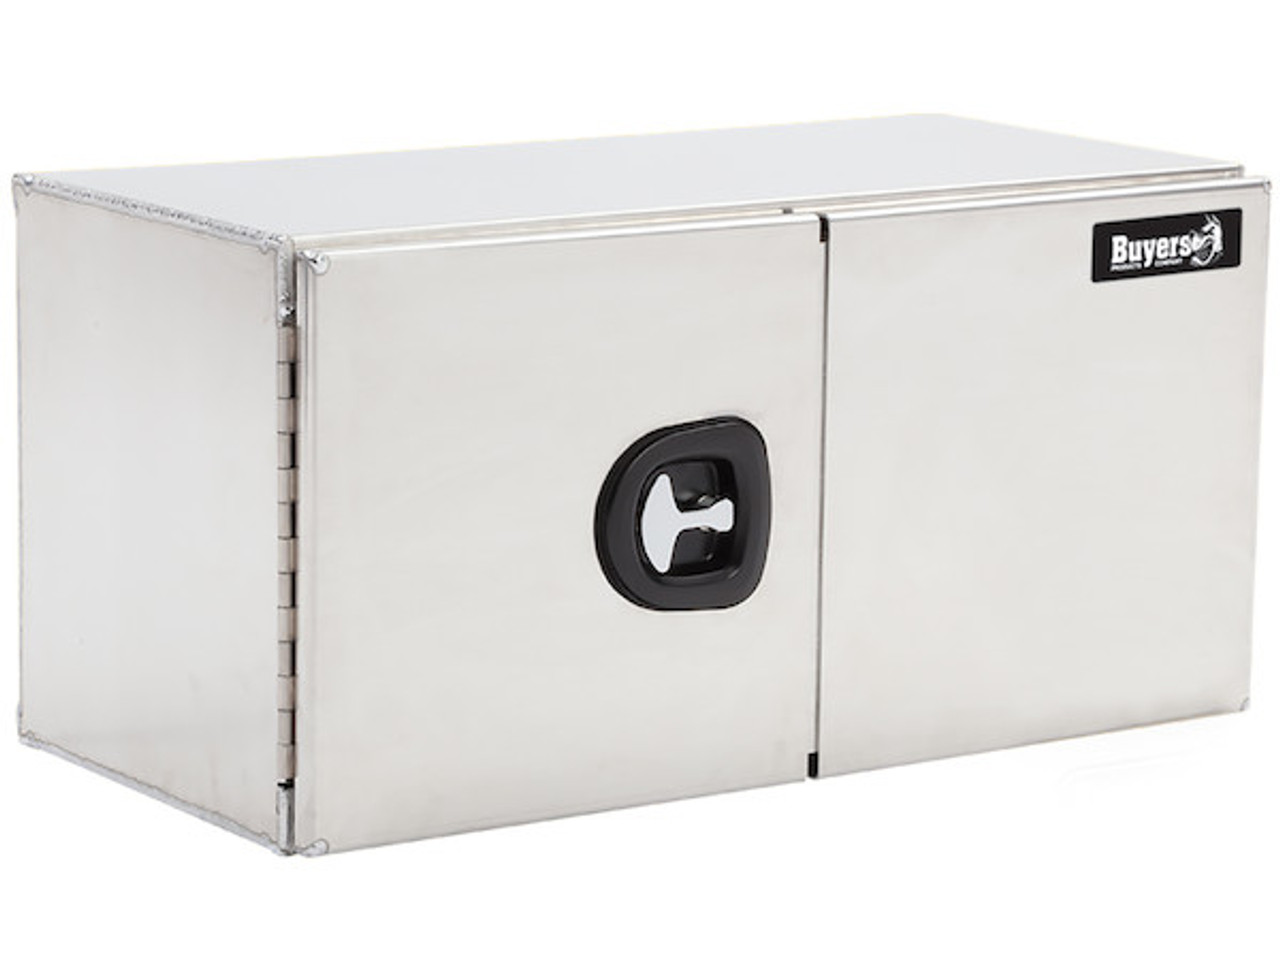 "1705310 BUYERS PRODUCTS SMOOTH ALUMINUM UNDERBODY TOOLBOX WITH BARN DOOR 18""HX18""DX48""W"